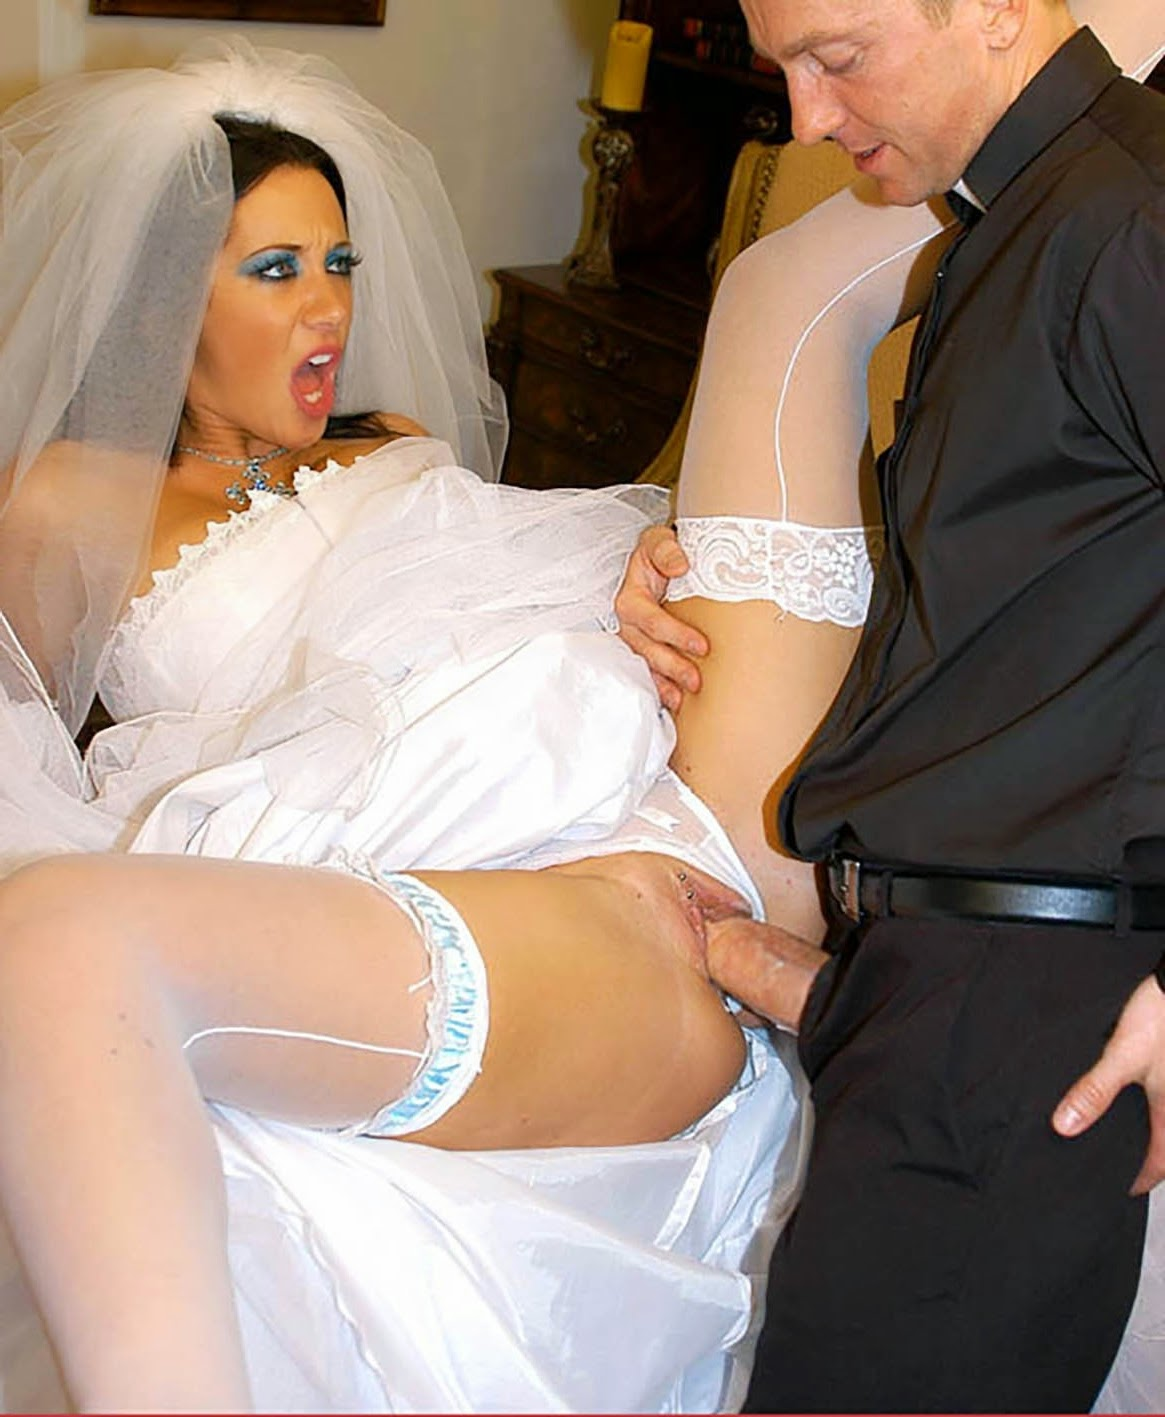 Perverted desire of married clerk